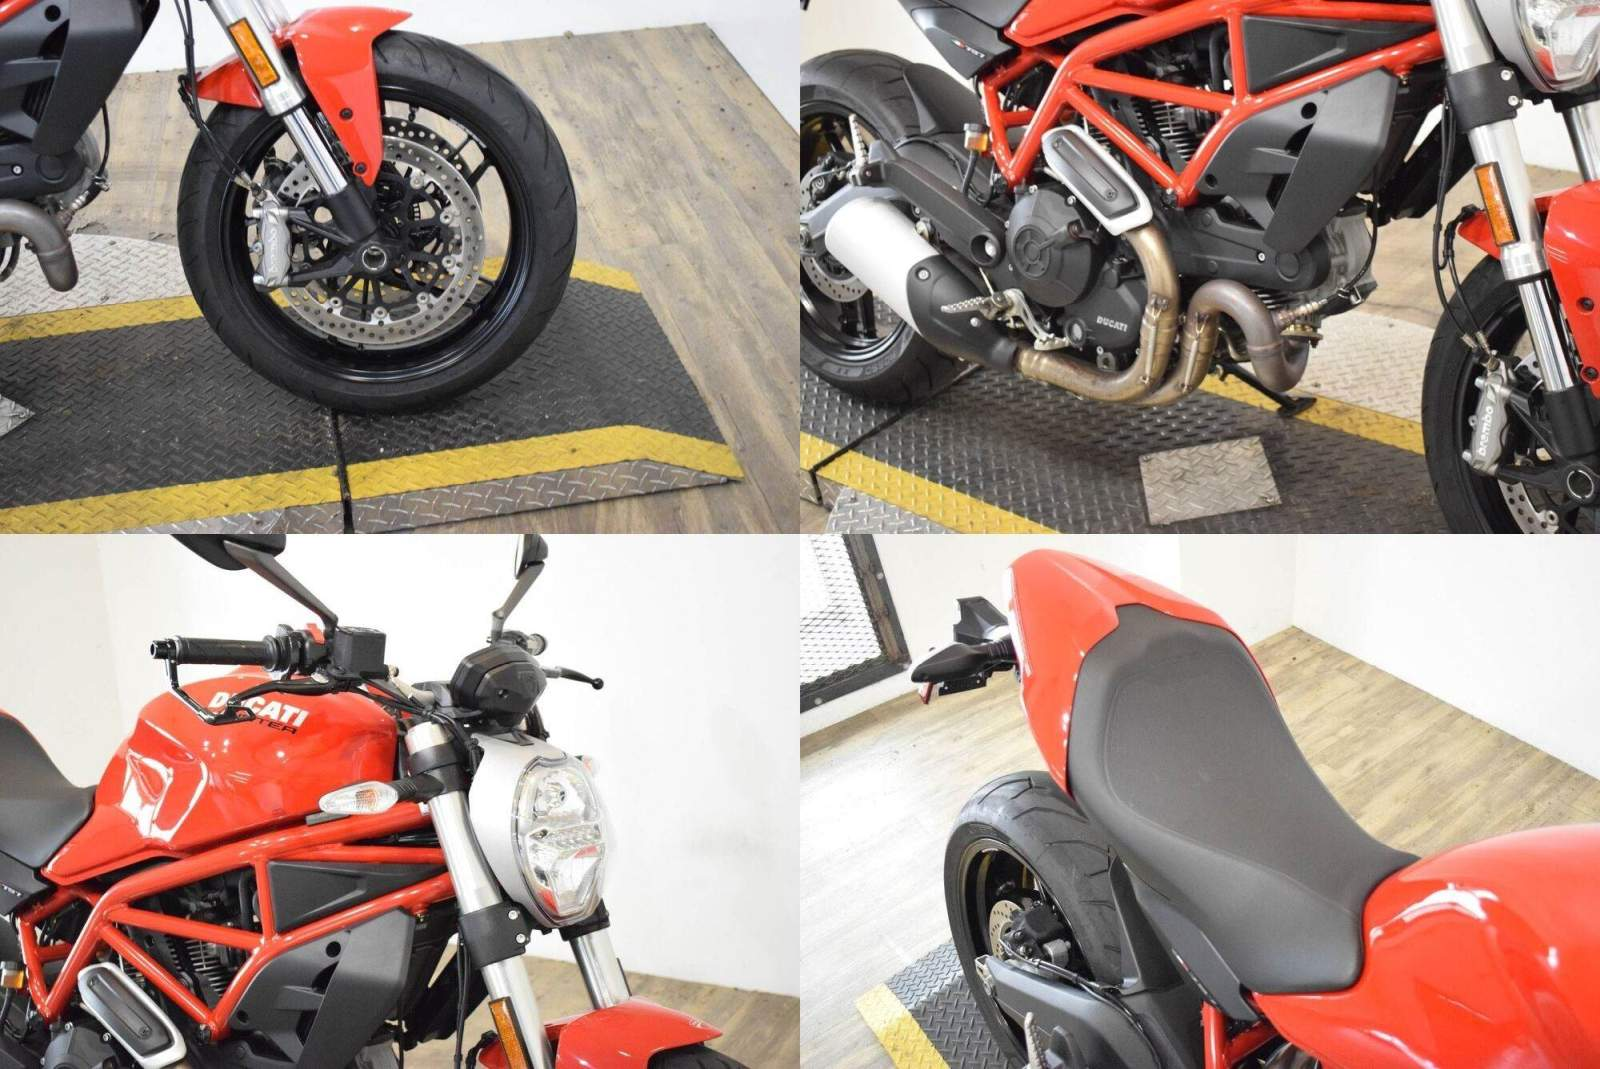 2017 Ducati Monster 797 Red used for sale near me